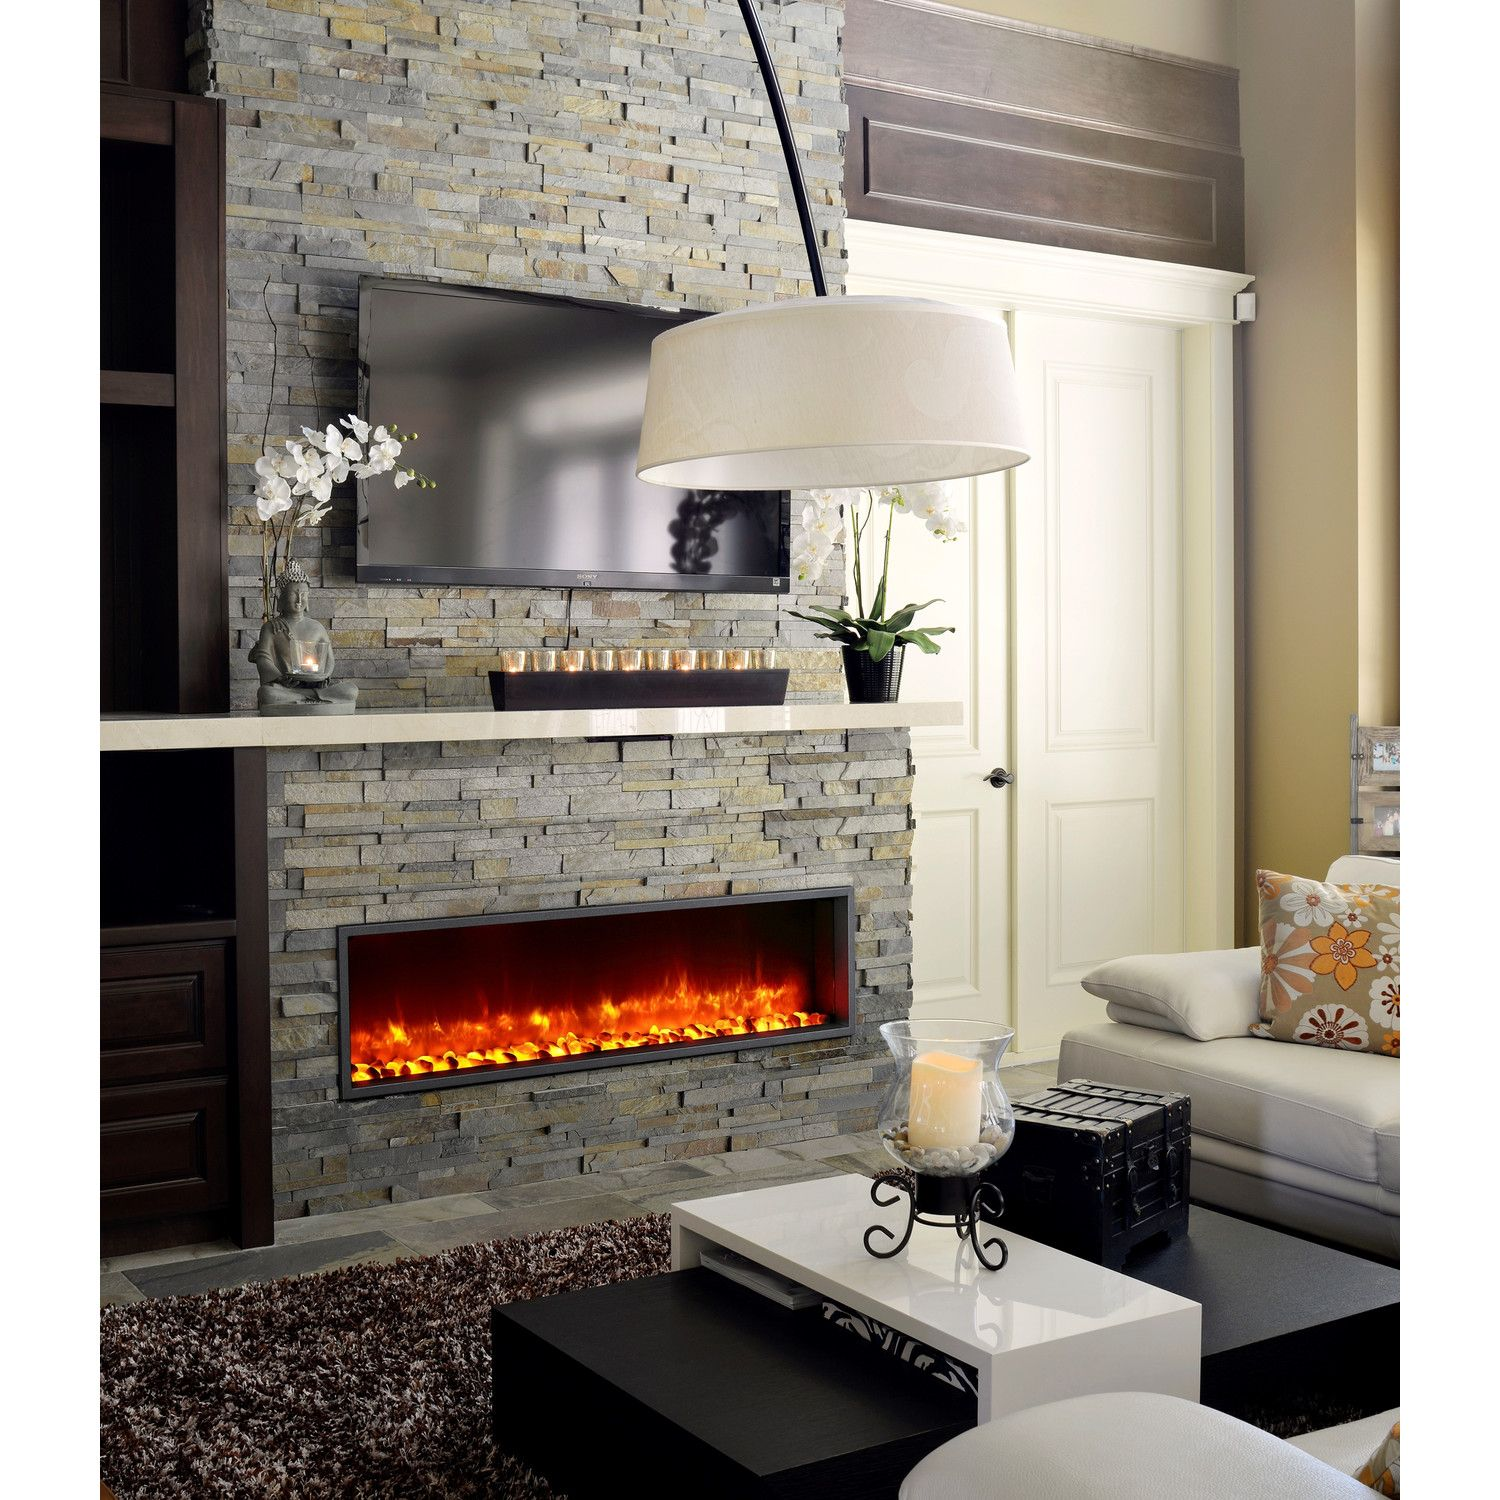 unique electric insert heat very top led new to home fireplace on nice no ideas design room photo trends interior